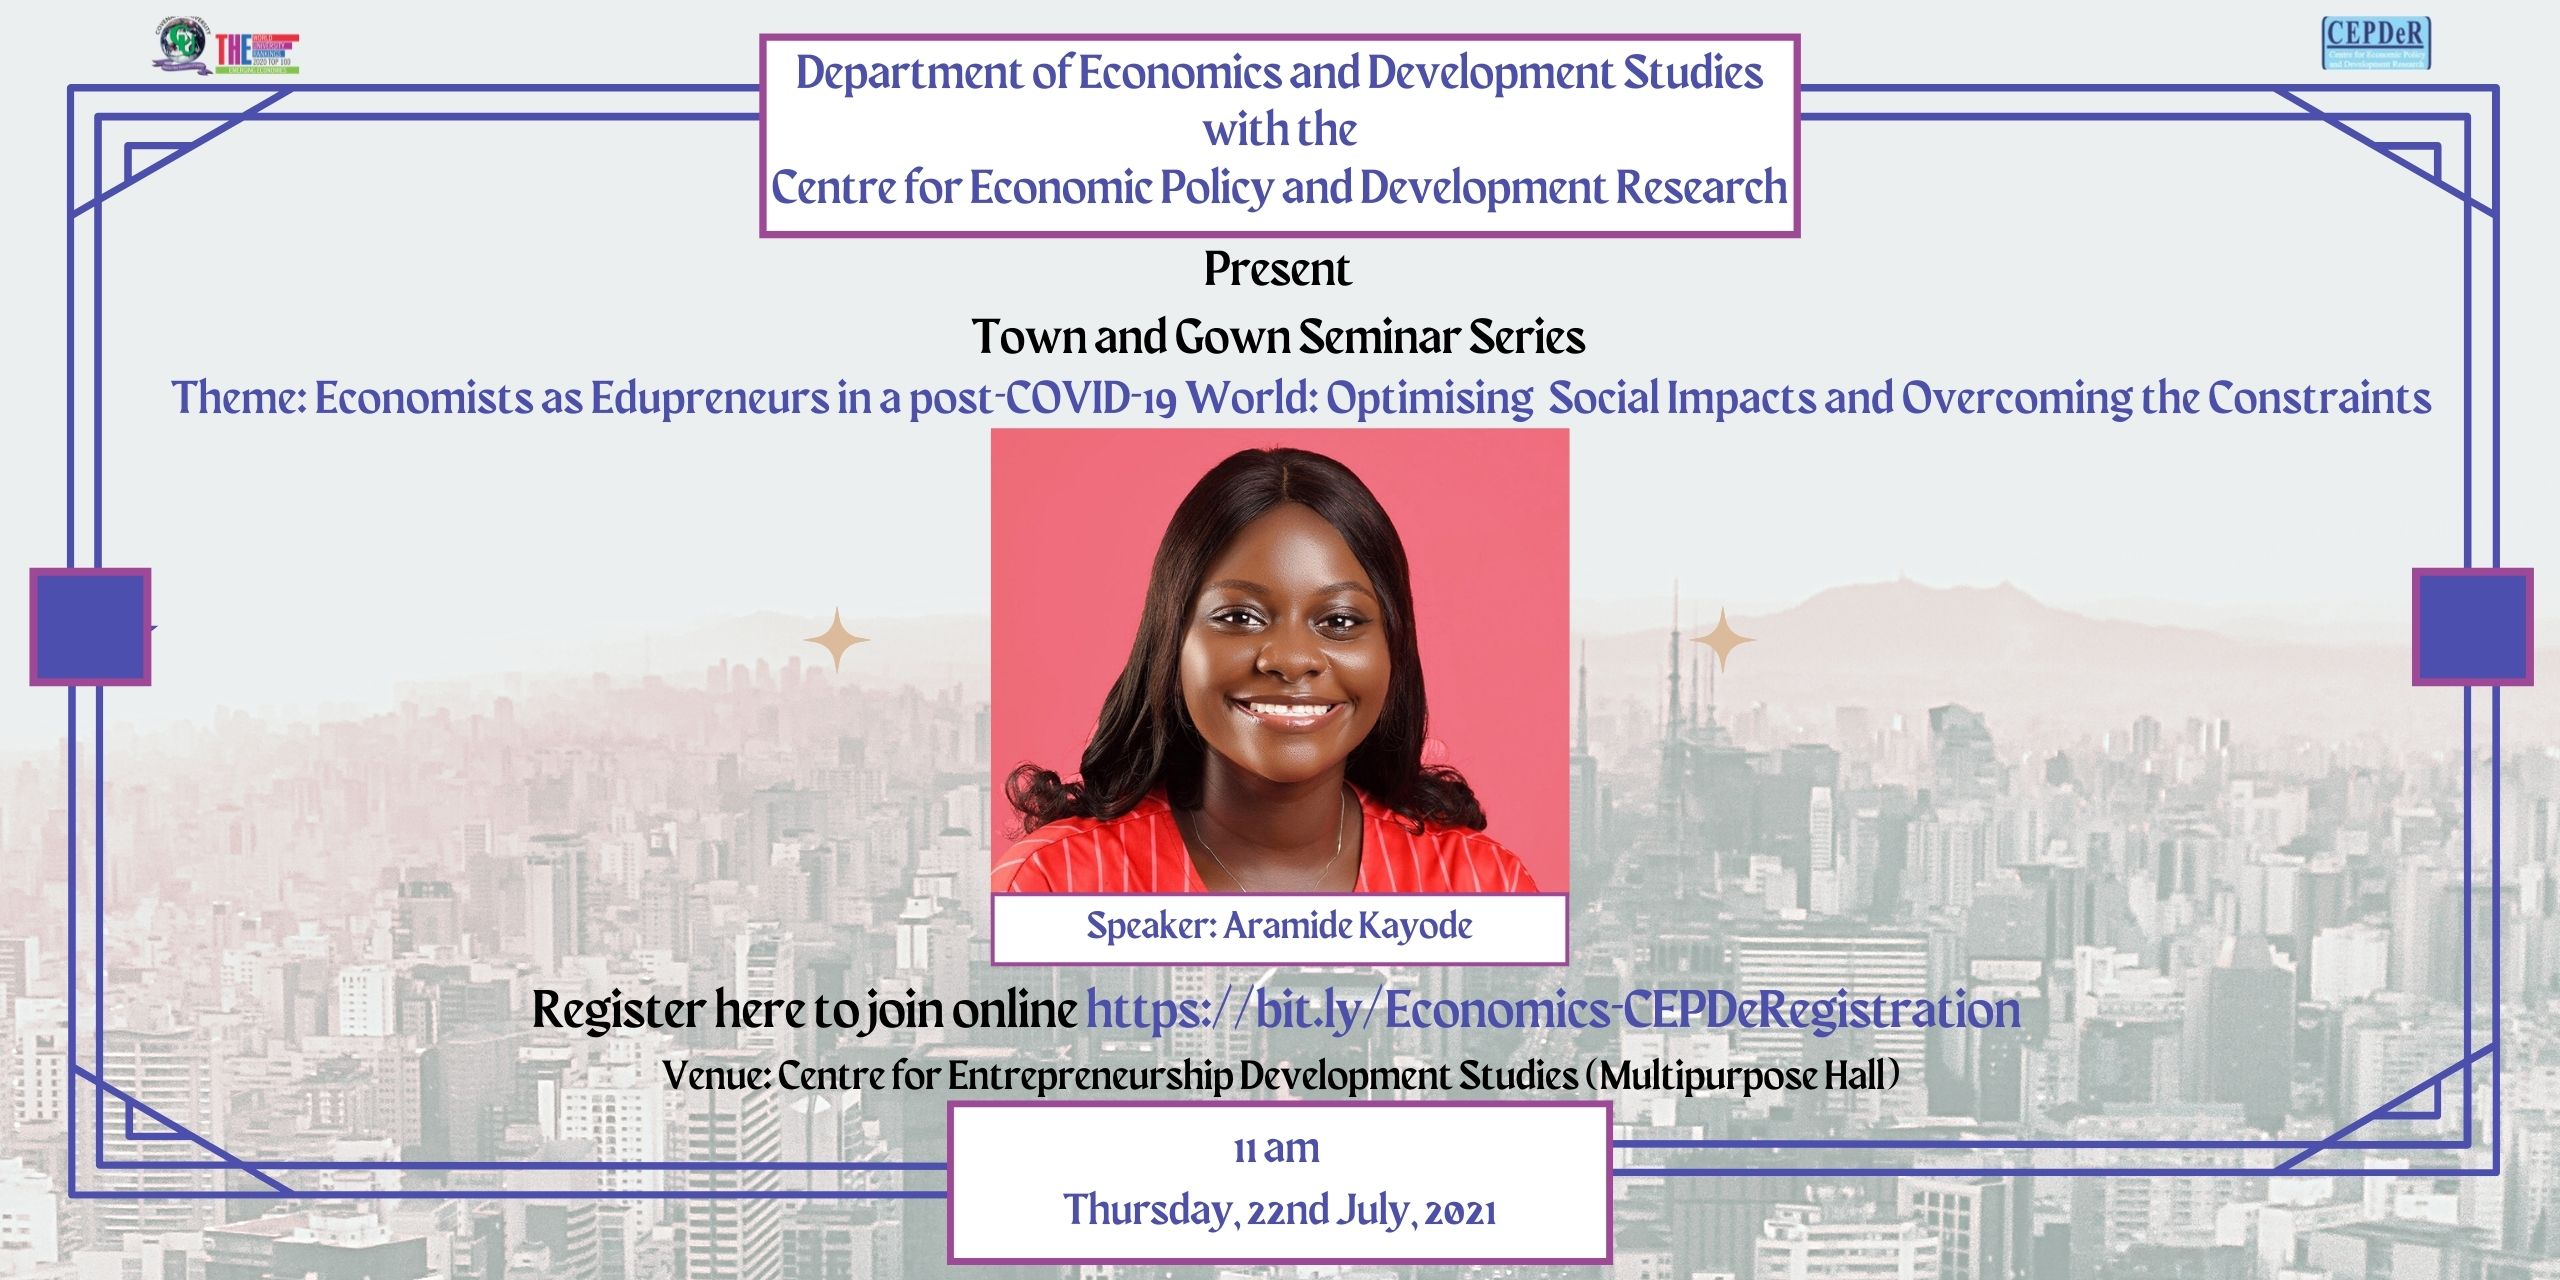 Town and Gown Seminar Series